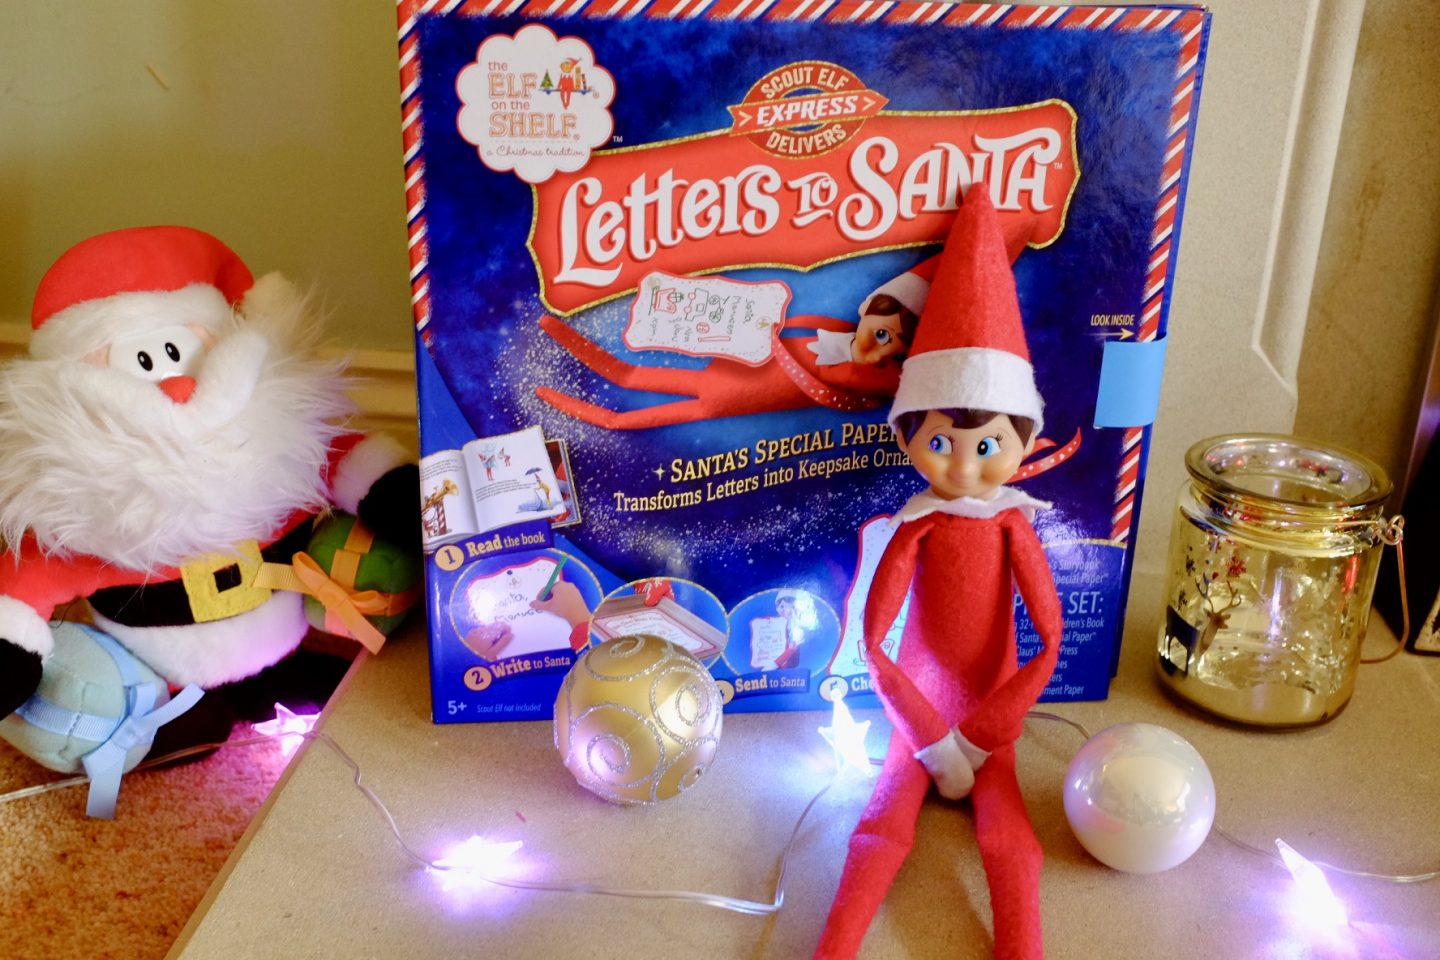 Letters to Santa with Elf on the Shelf